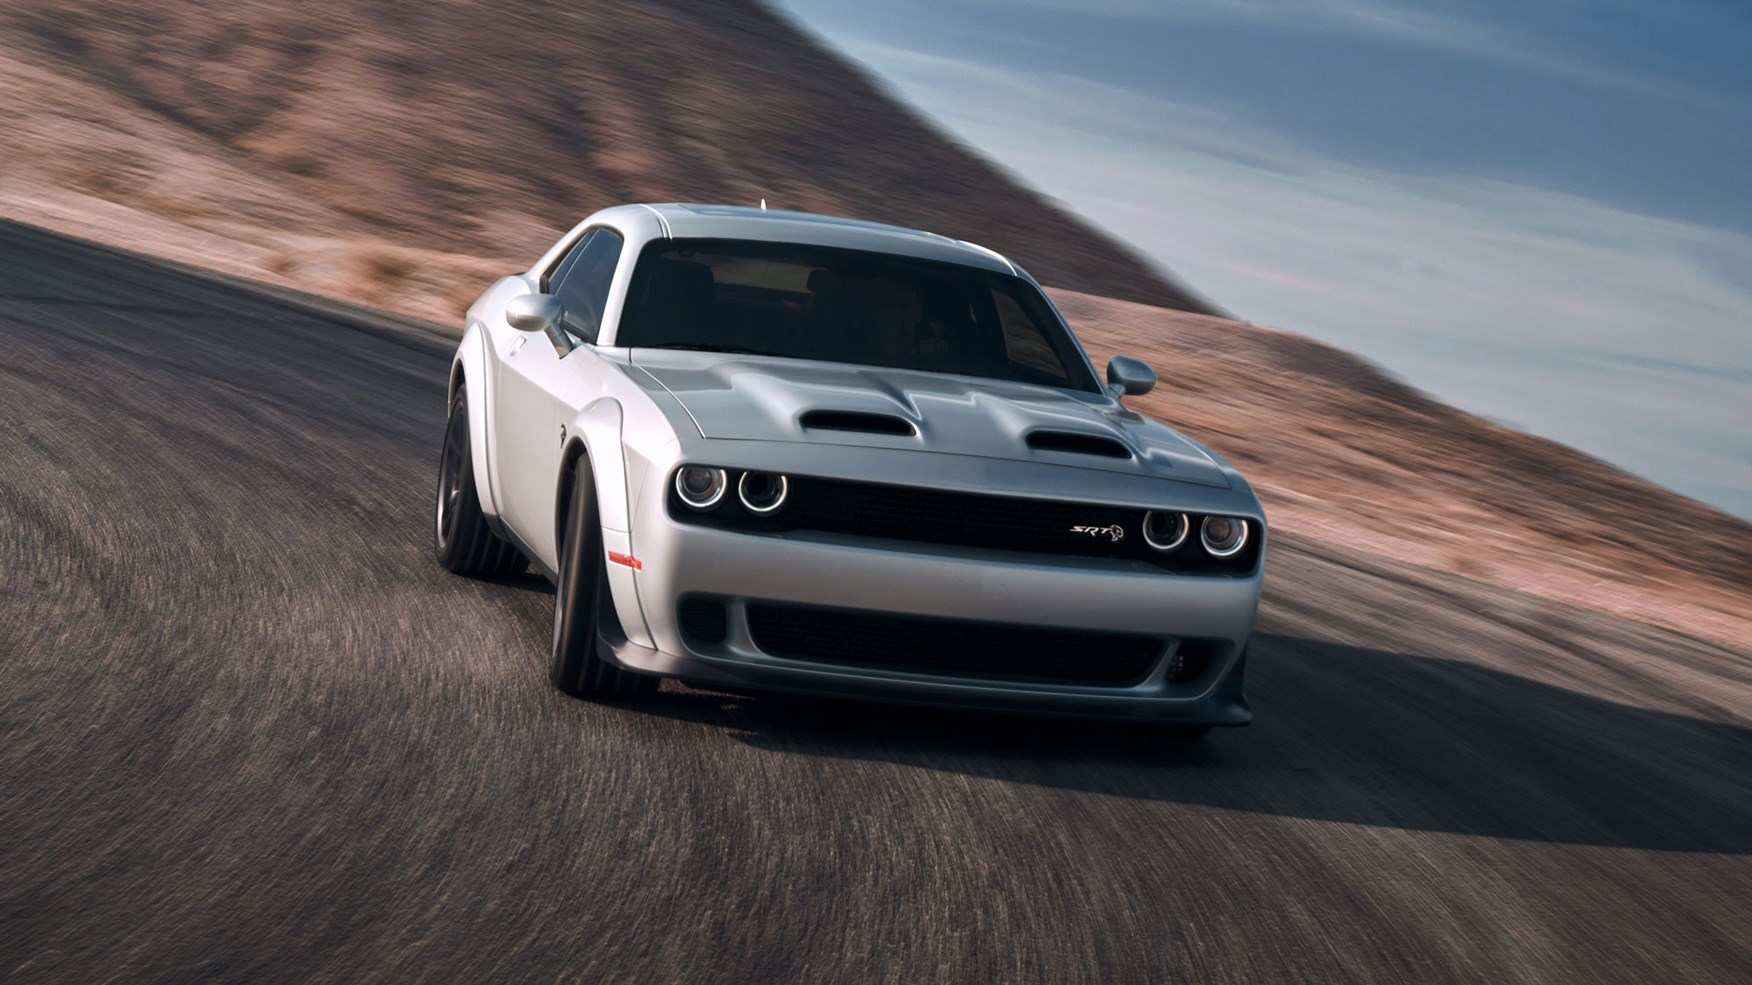 73 The Best 2019 Challenger Srt8 Hellcat Redesign And Review